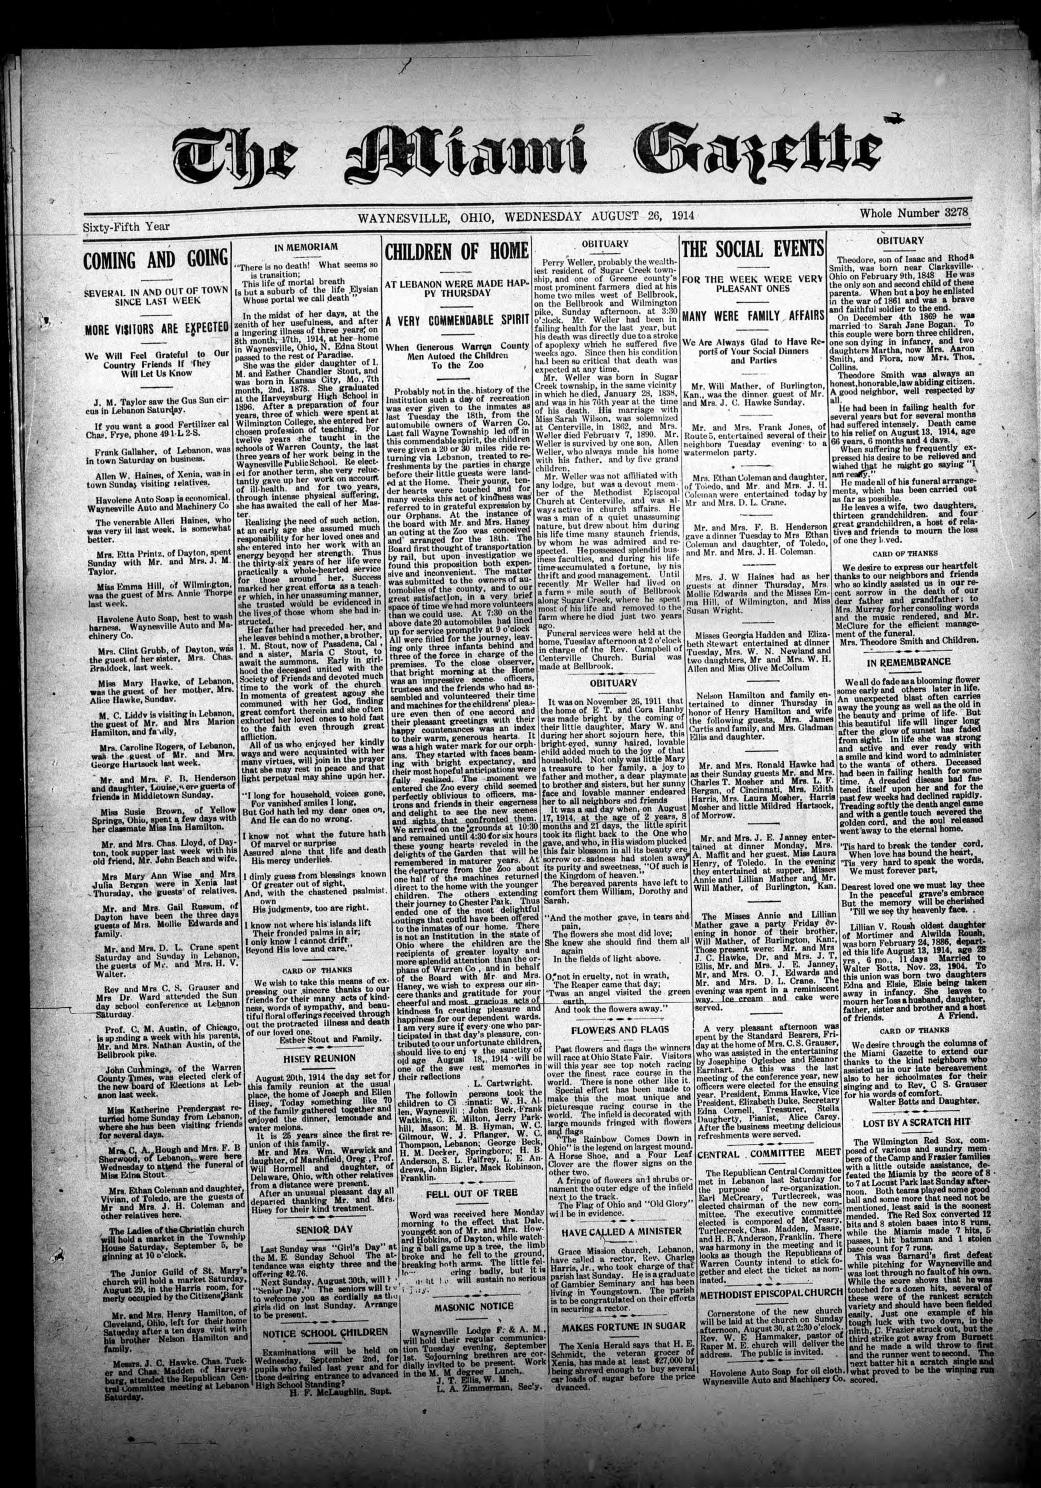 Miami Gazette August 26, 1914 - March 3, 1915 by marylcook